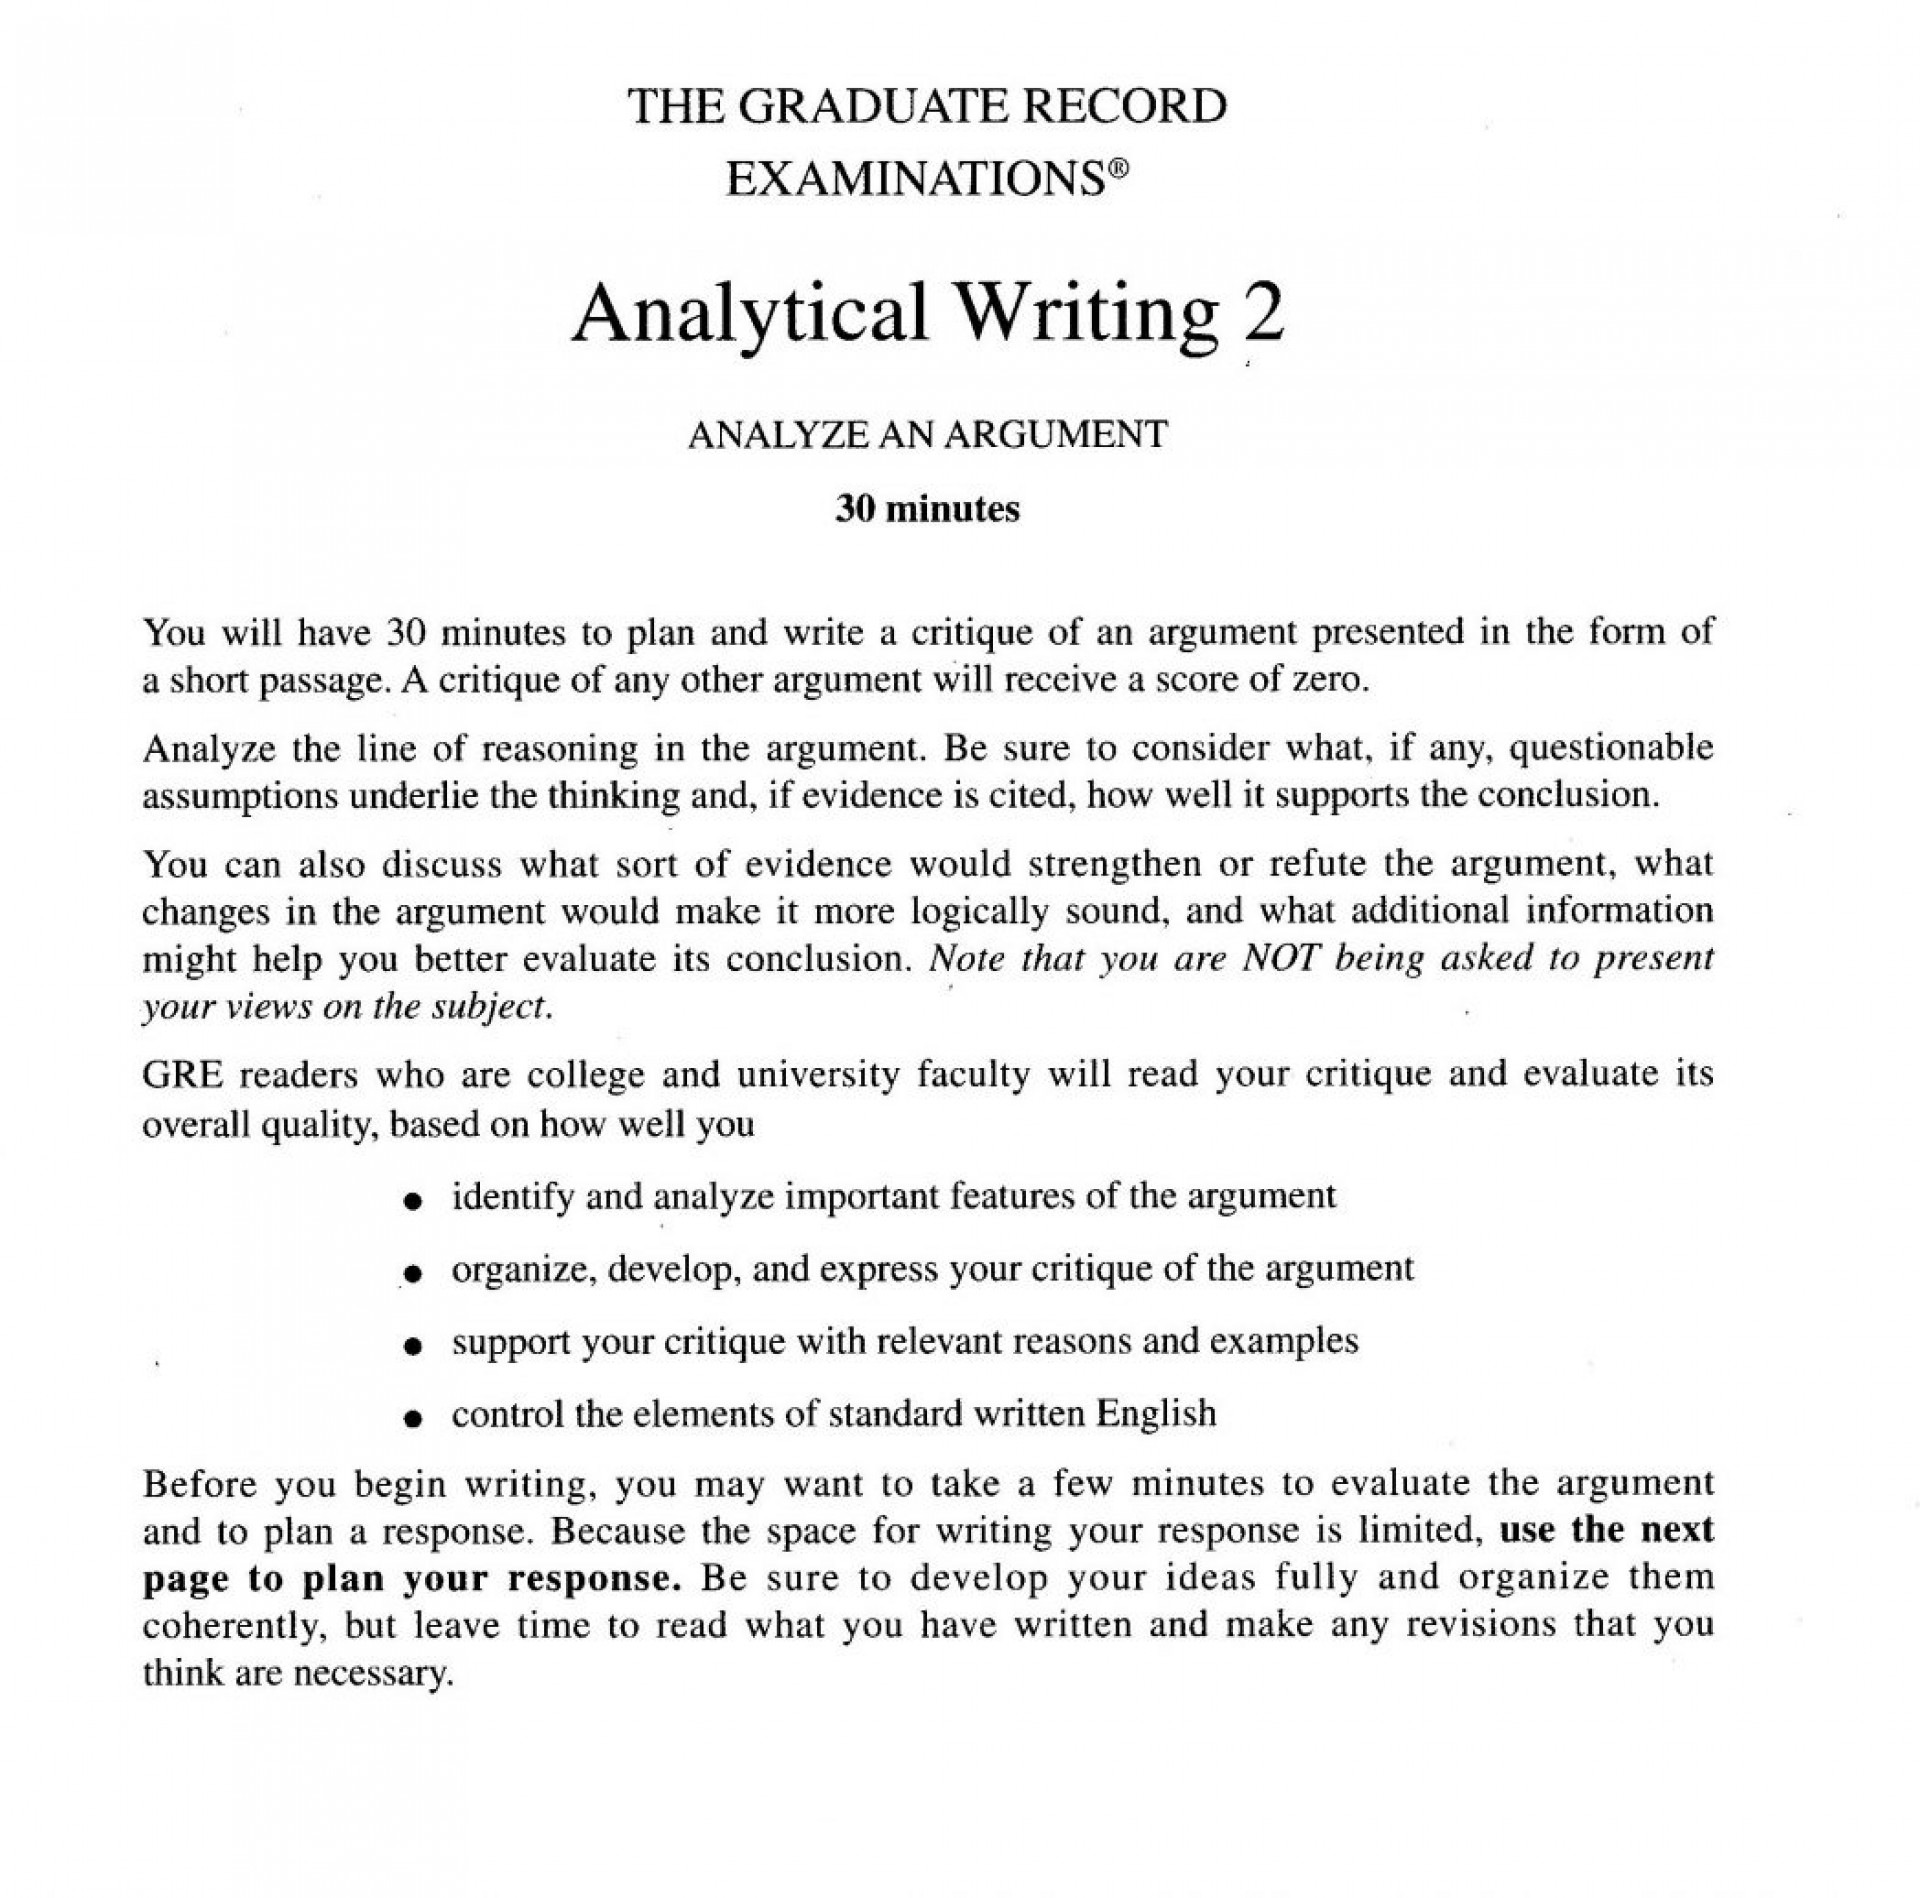 017 How To Write Response Essay Summary Analysi Readers 1048x1036 Amazing Reader On The Story Of An Hour Examples Definition 1920